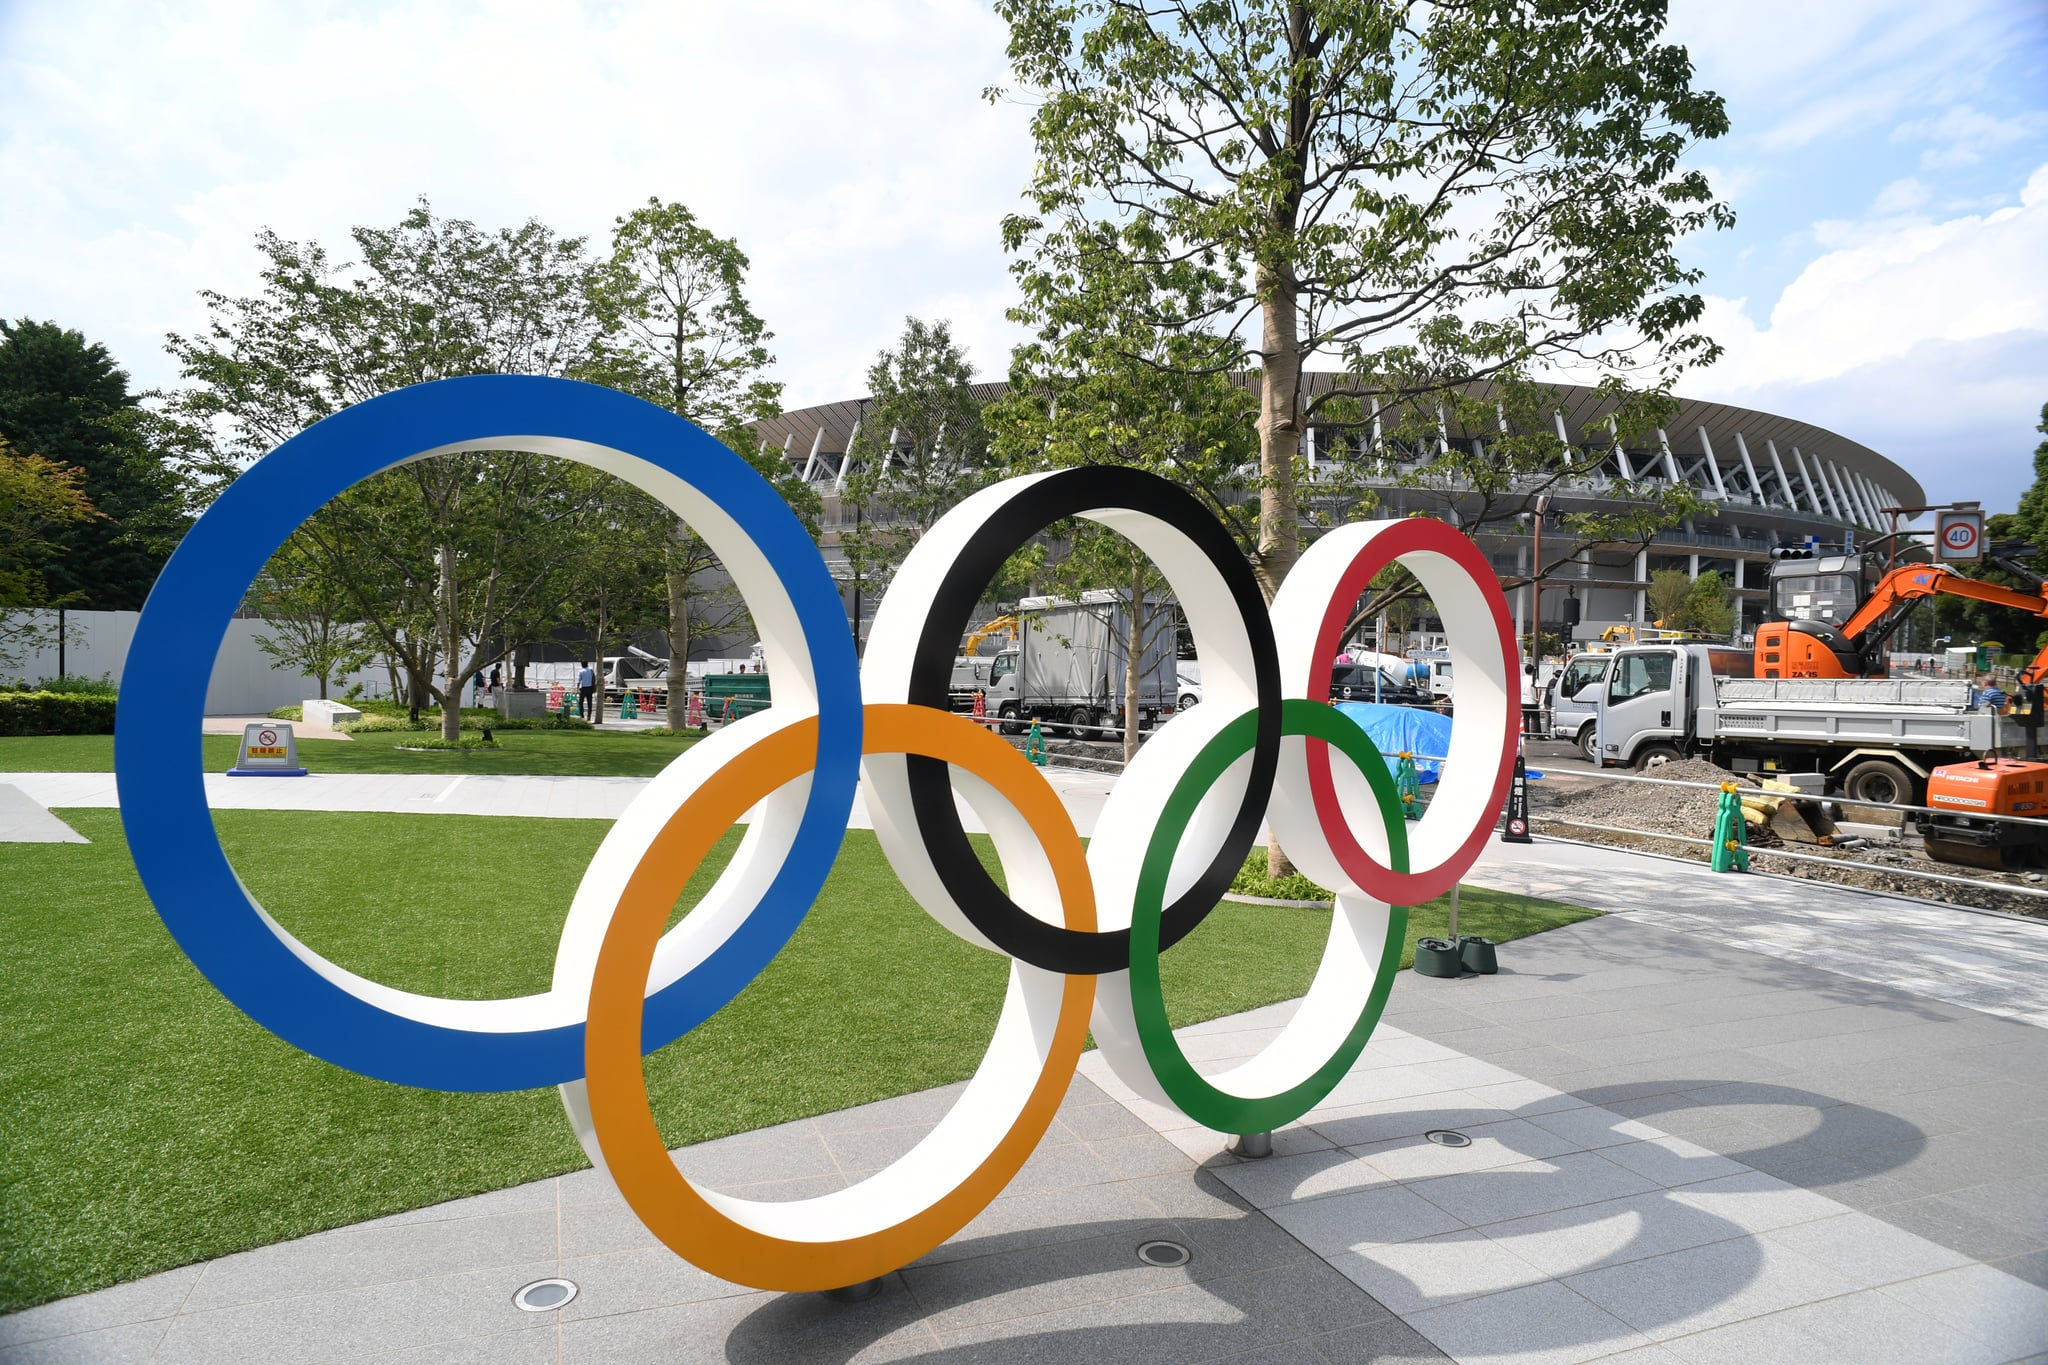 TOKYO, JAPAN - JULY 24: The Olympic Rings are displayed in front of the new national stadiumm which construction continues on the day marking the one year to go to the Tokyo 2020 Olympic Games on July 24, 2019 in Tokyo, Japan. (Photo by Etsuo Hara/Getty Images)